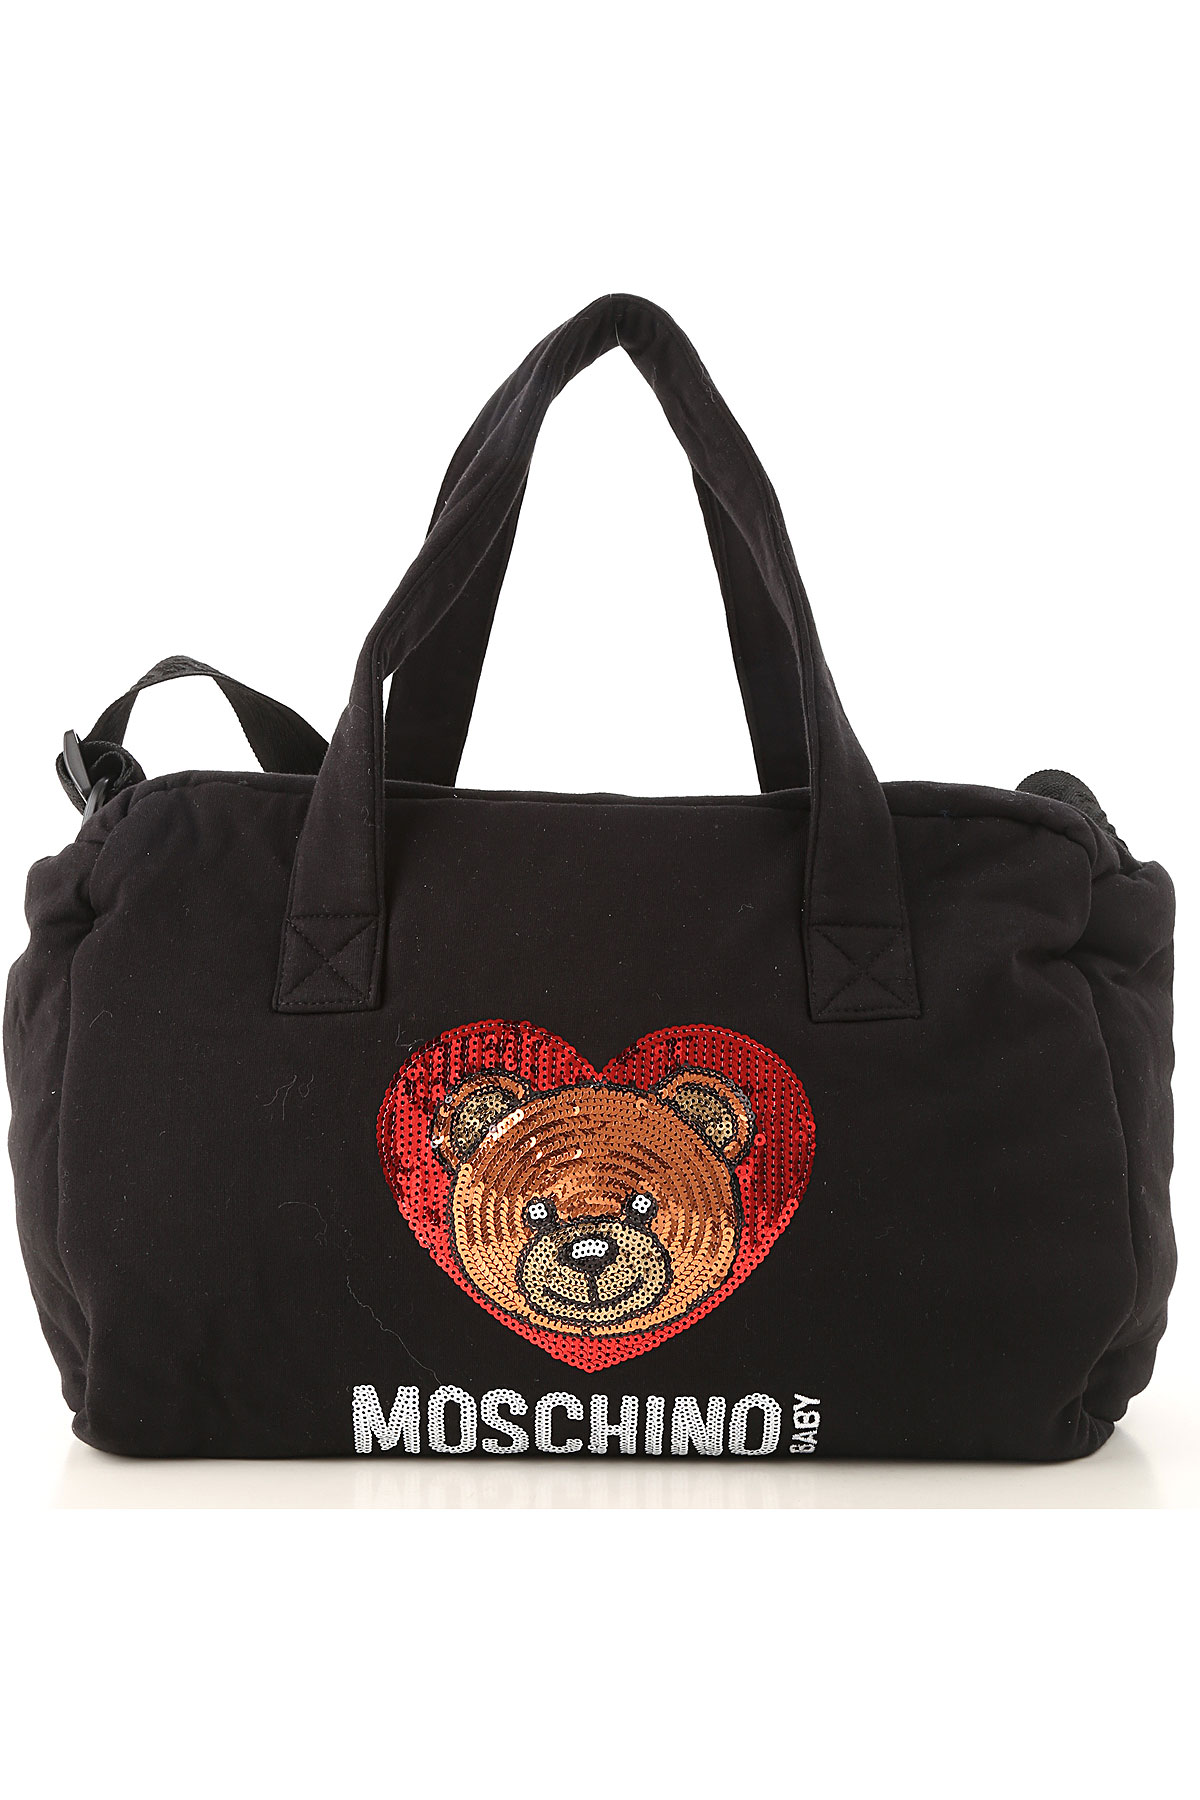 Image of Moschino Baby Girls Handbag, Black, Cotton, 2017